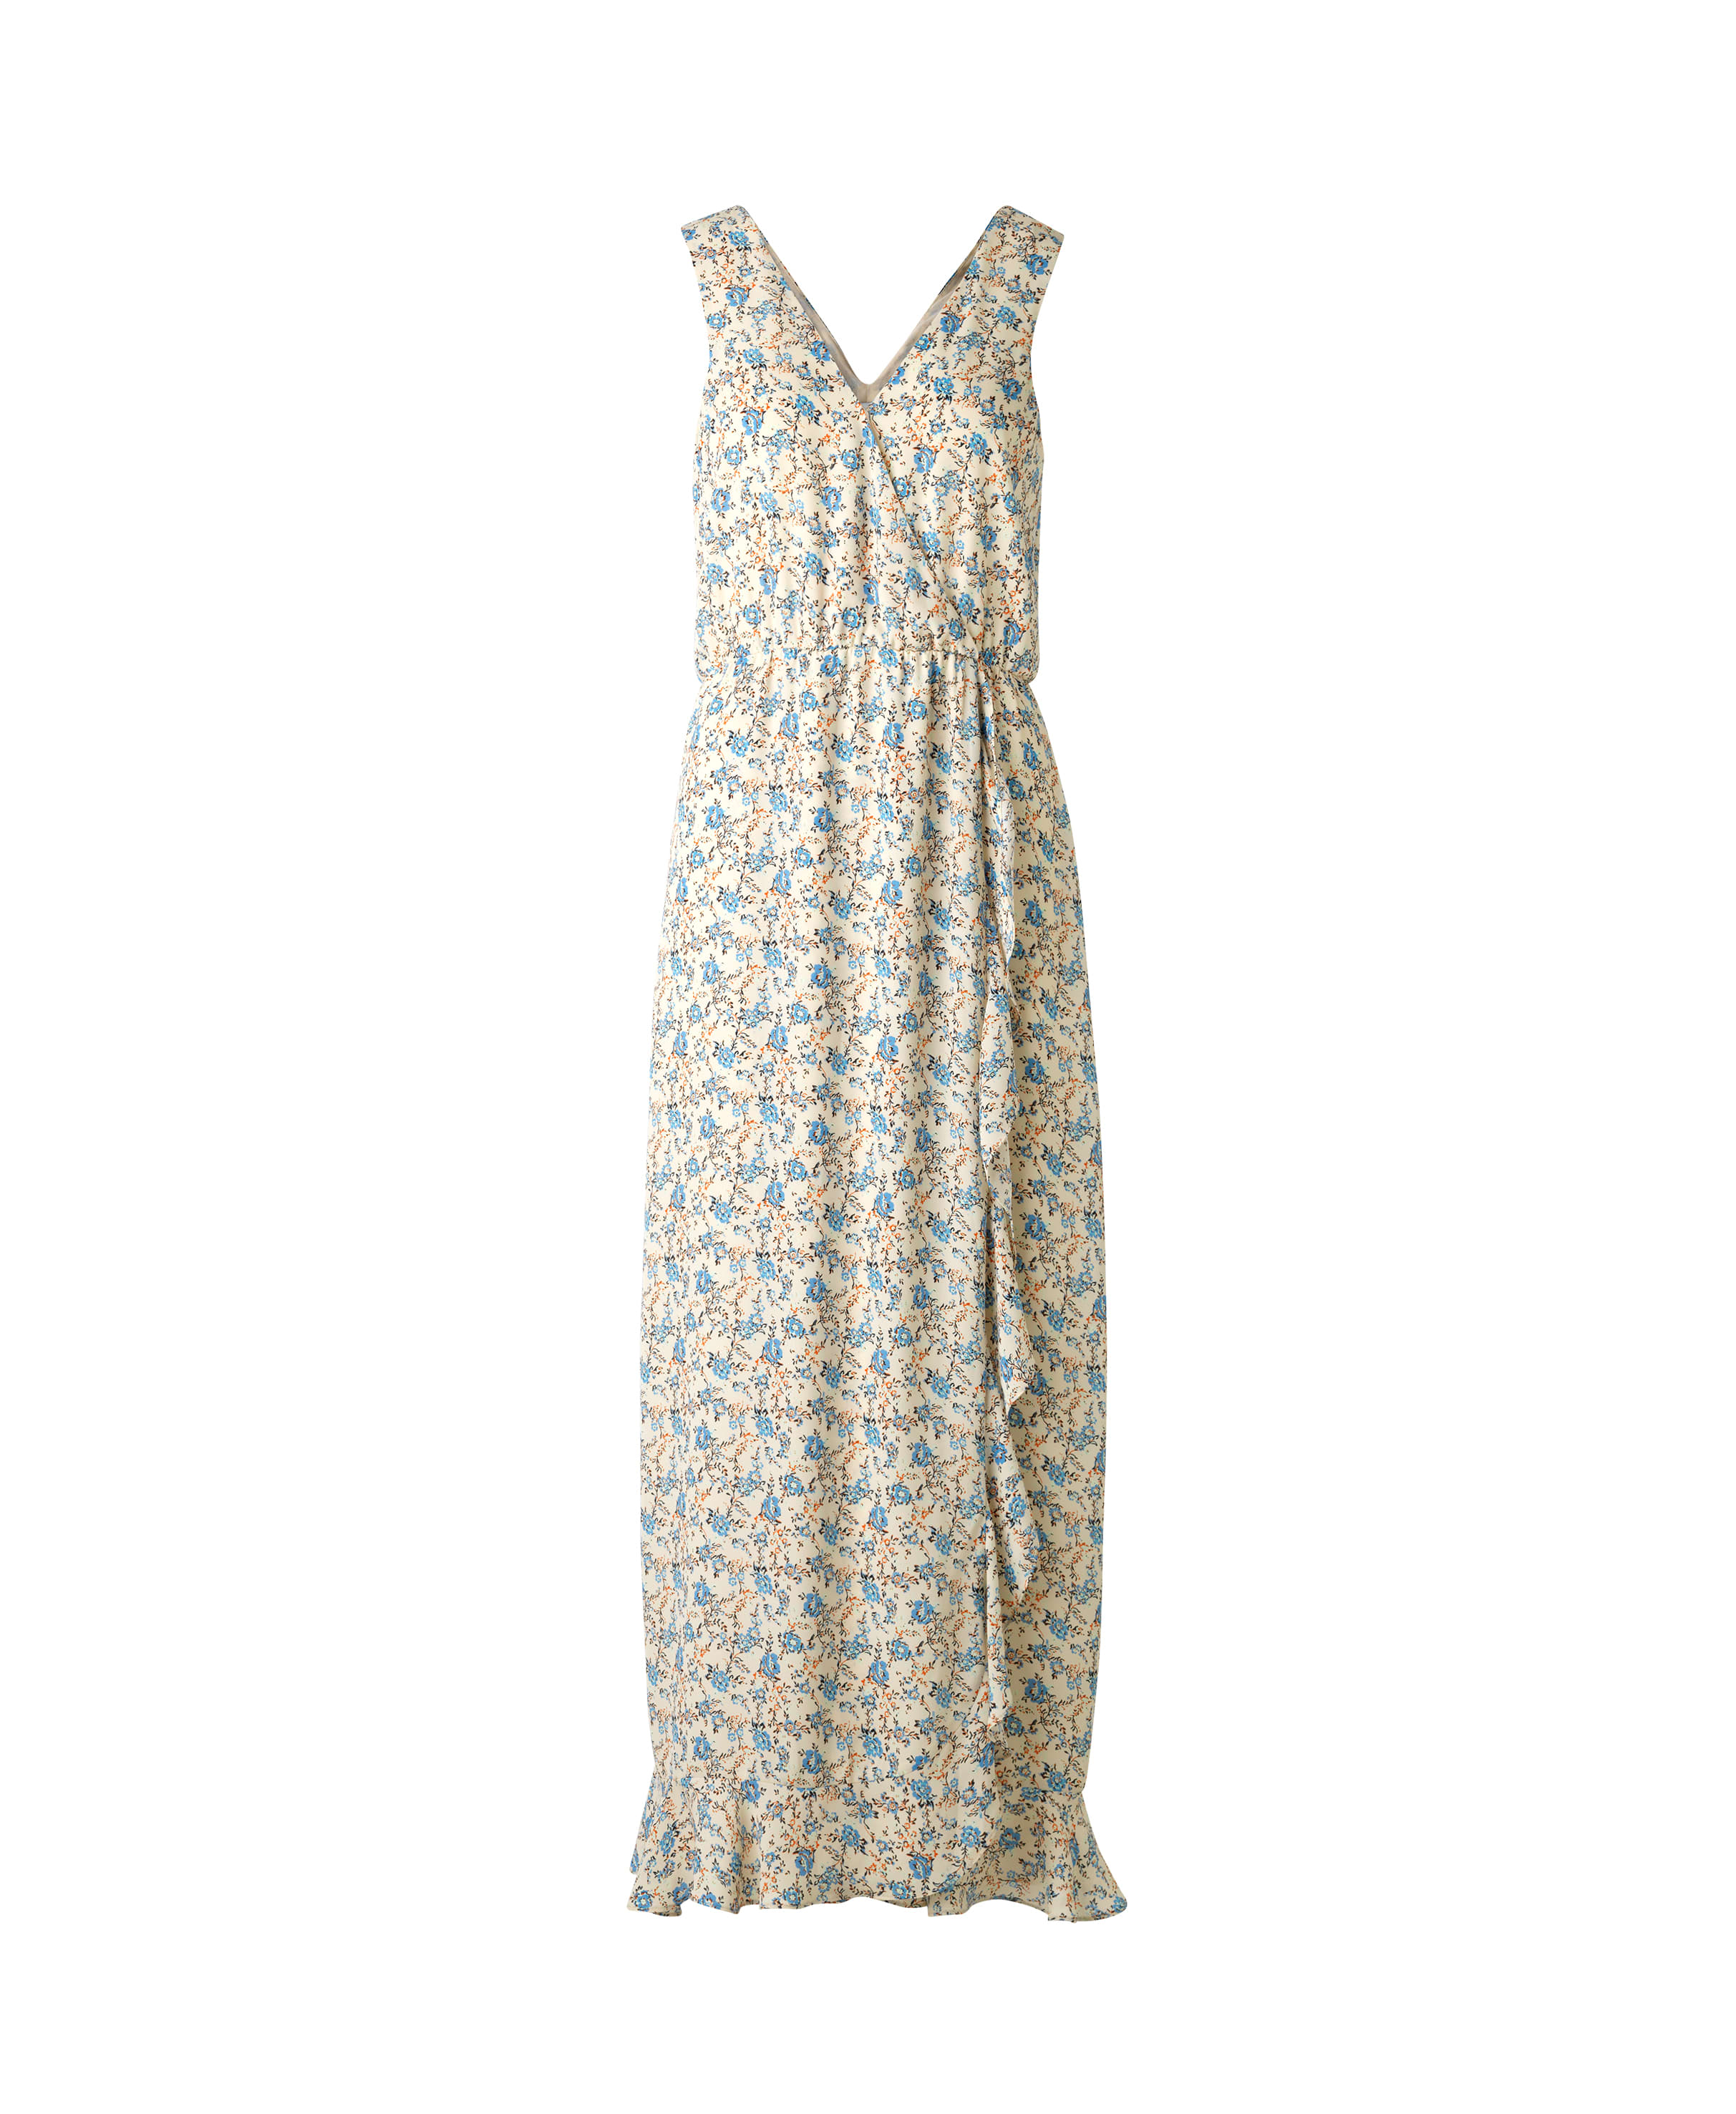 Samsoe & Samsoe Blossom Print Limon Long Dress